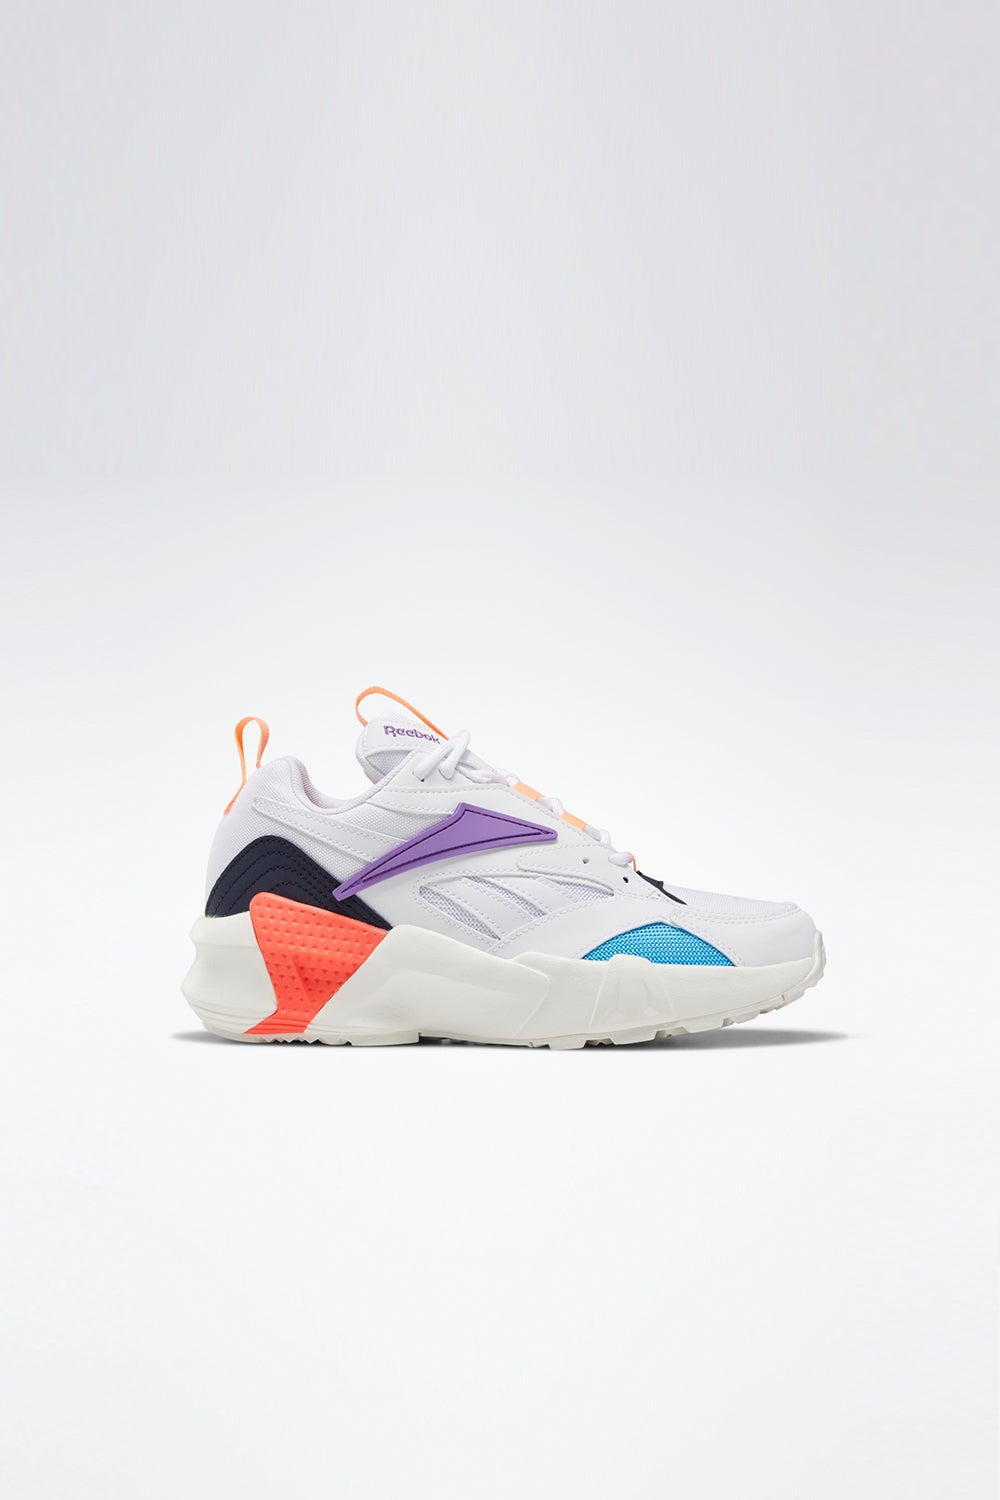 Reebok Double Nu Pops White/Grape Punch/Bright